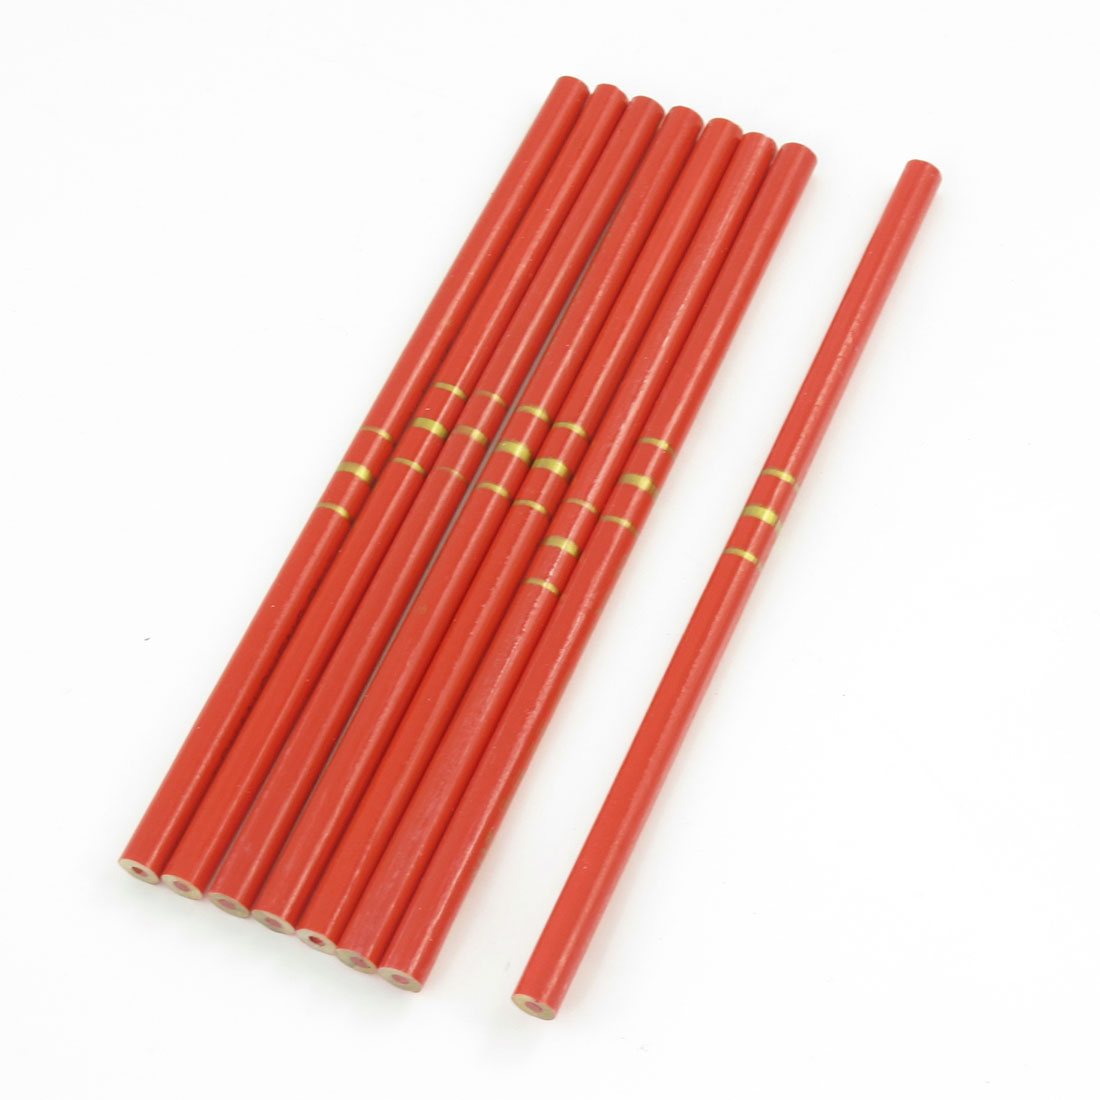 "8 Pcs 6.9"" Long Red Wooden Writing Painting Drawing Pencil"